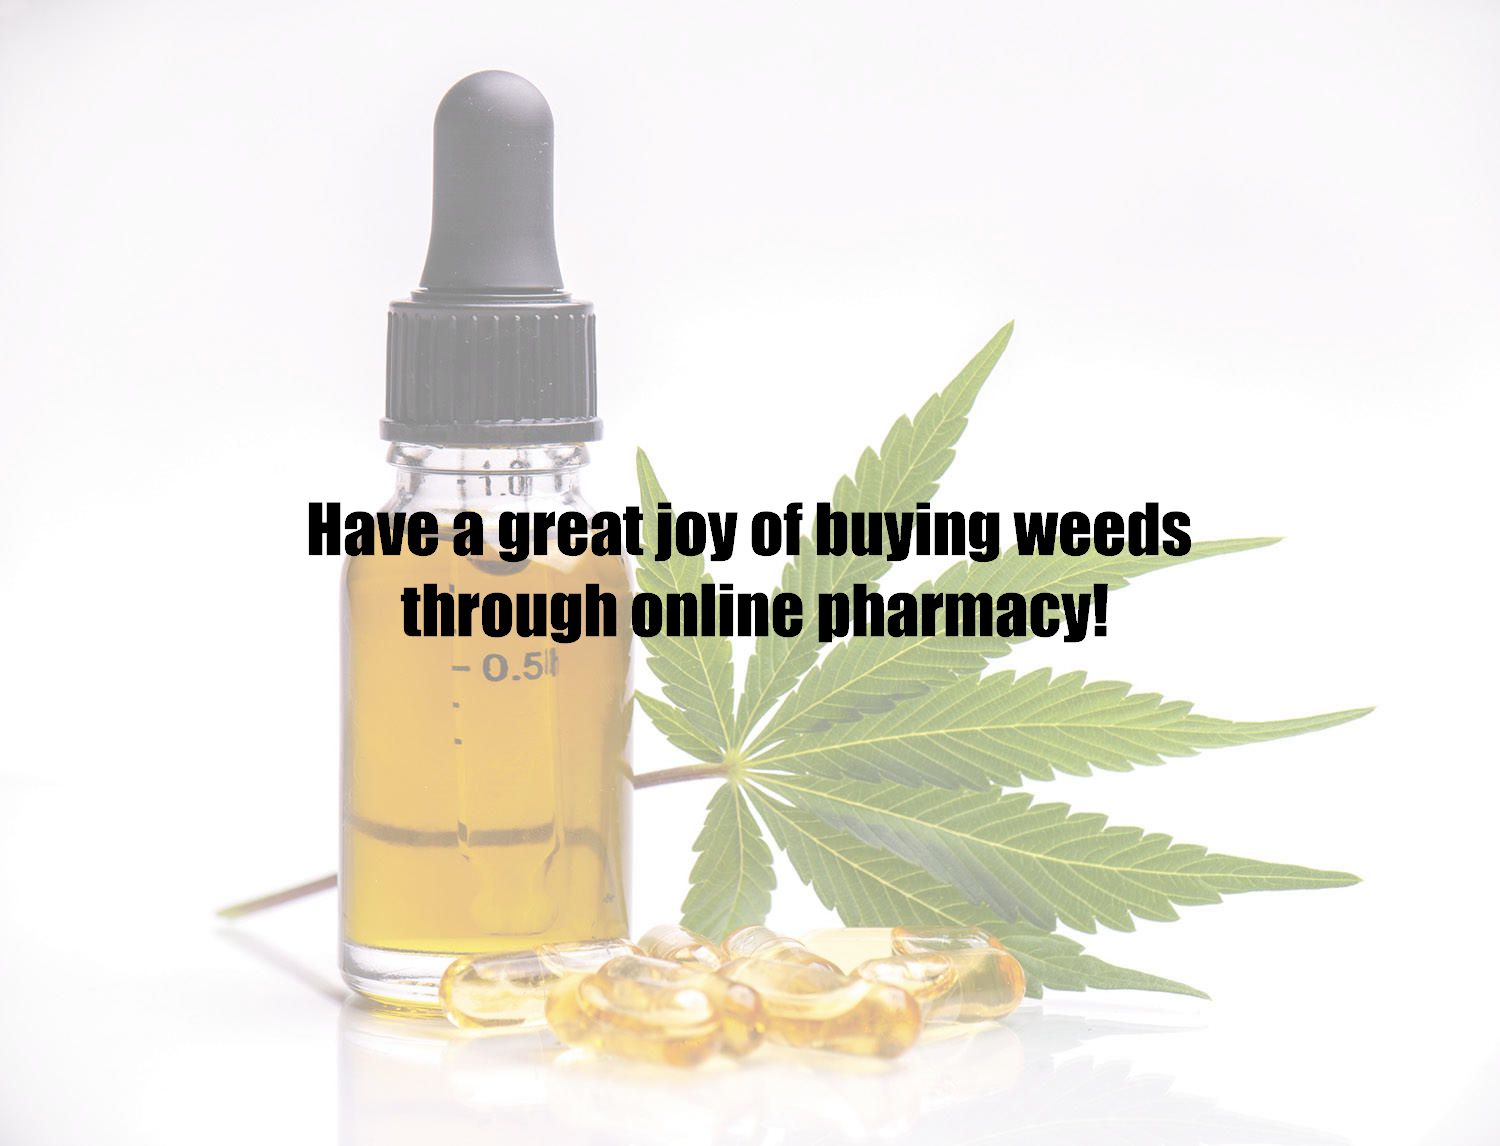 Have a great joy of buying weeds through online pharmacy!